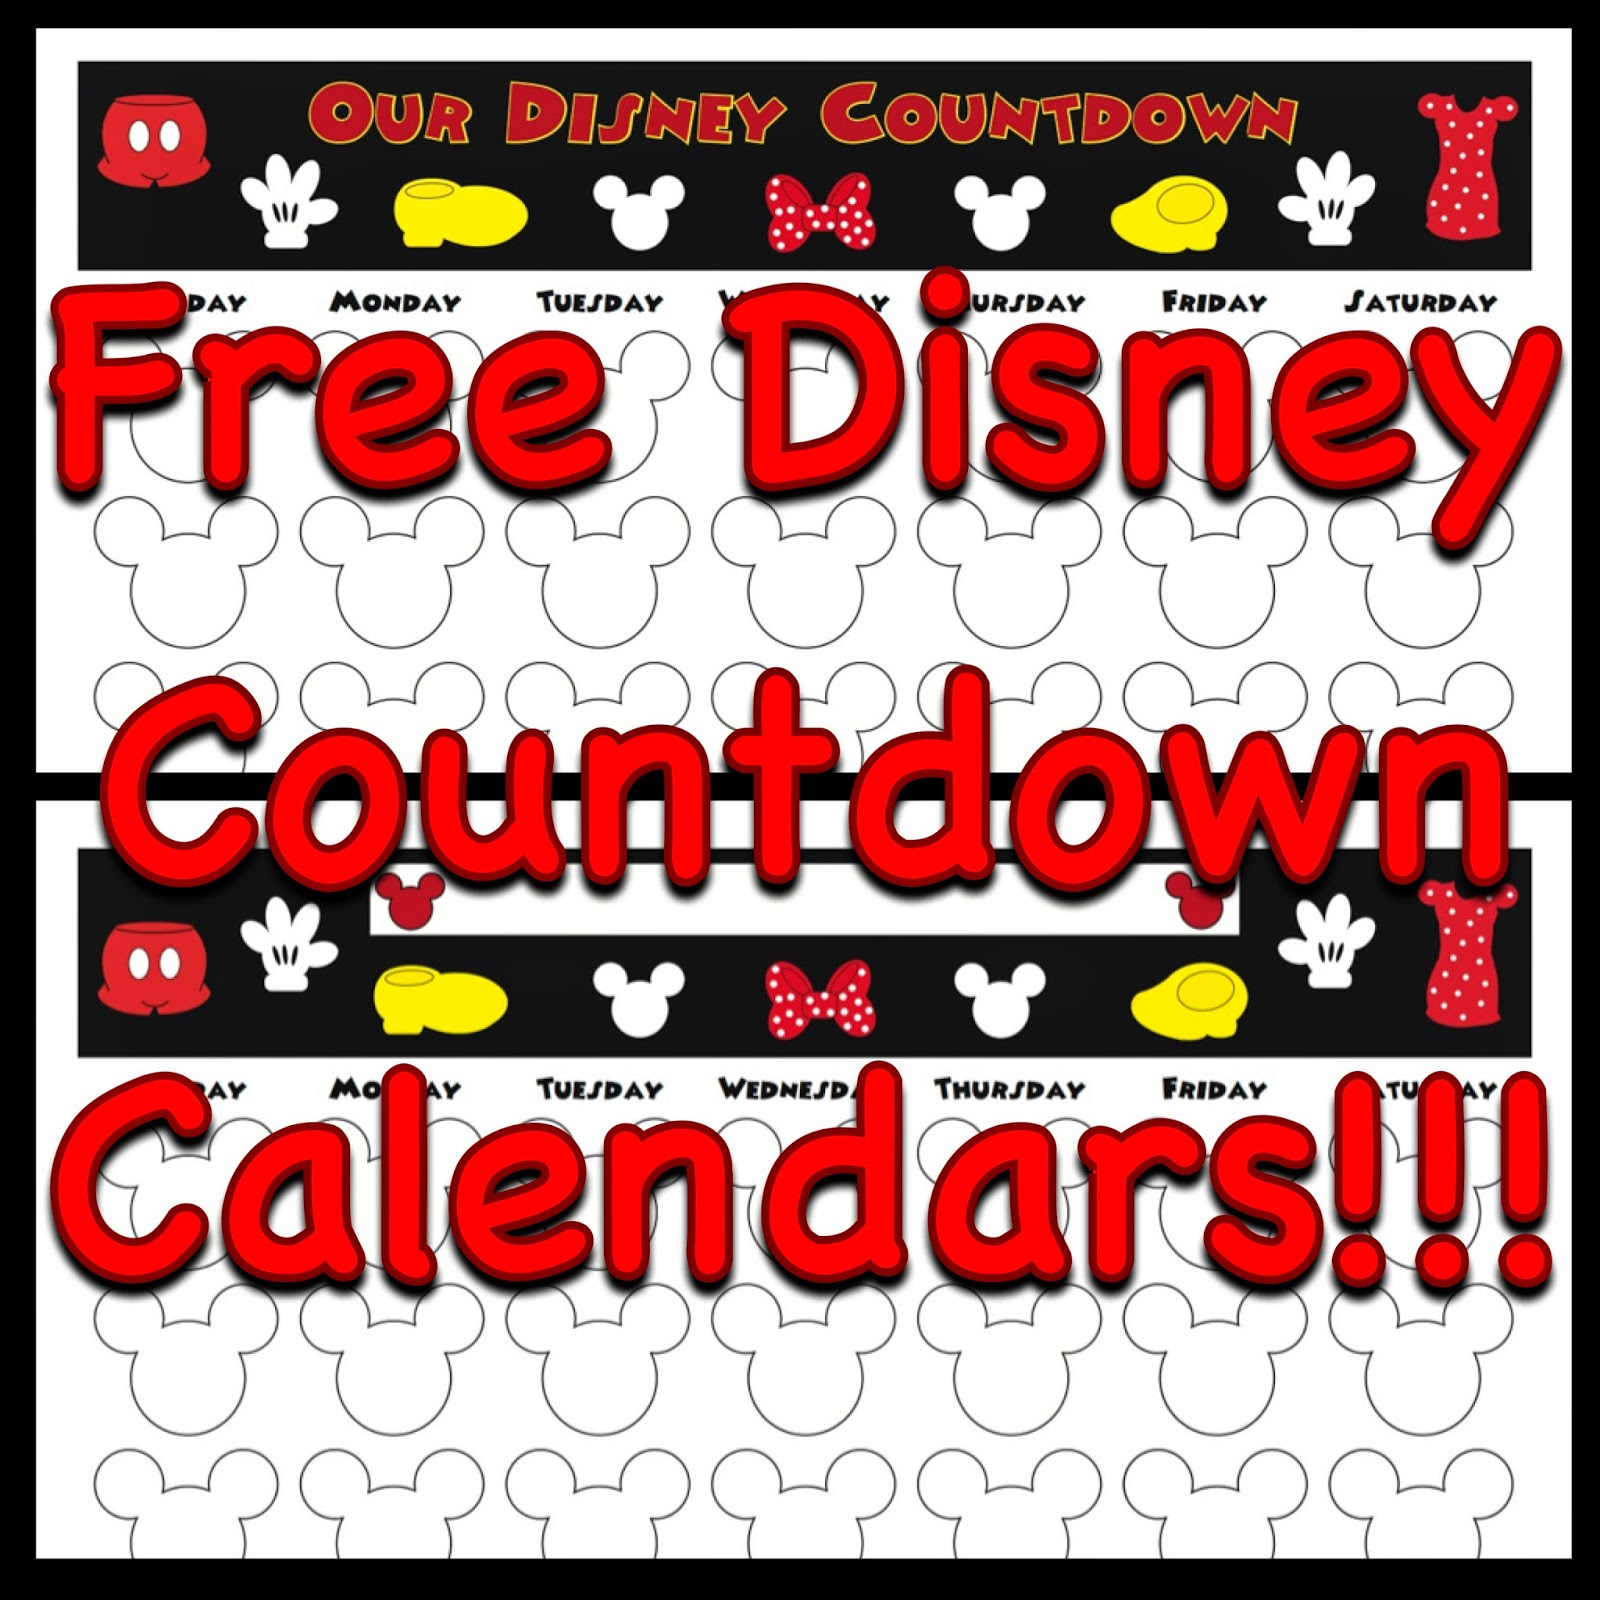 ... Disney Countdown Calendar | Search Results | 2016 Calendar Printable